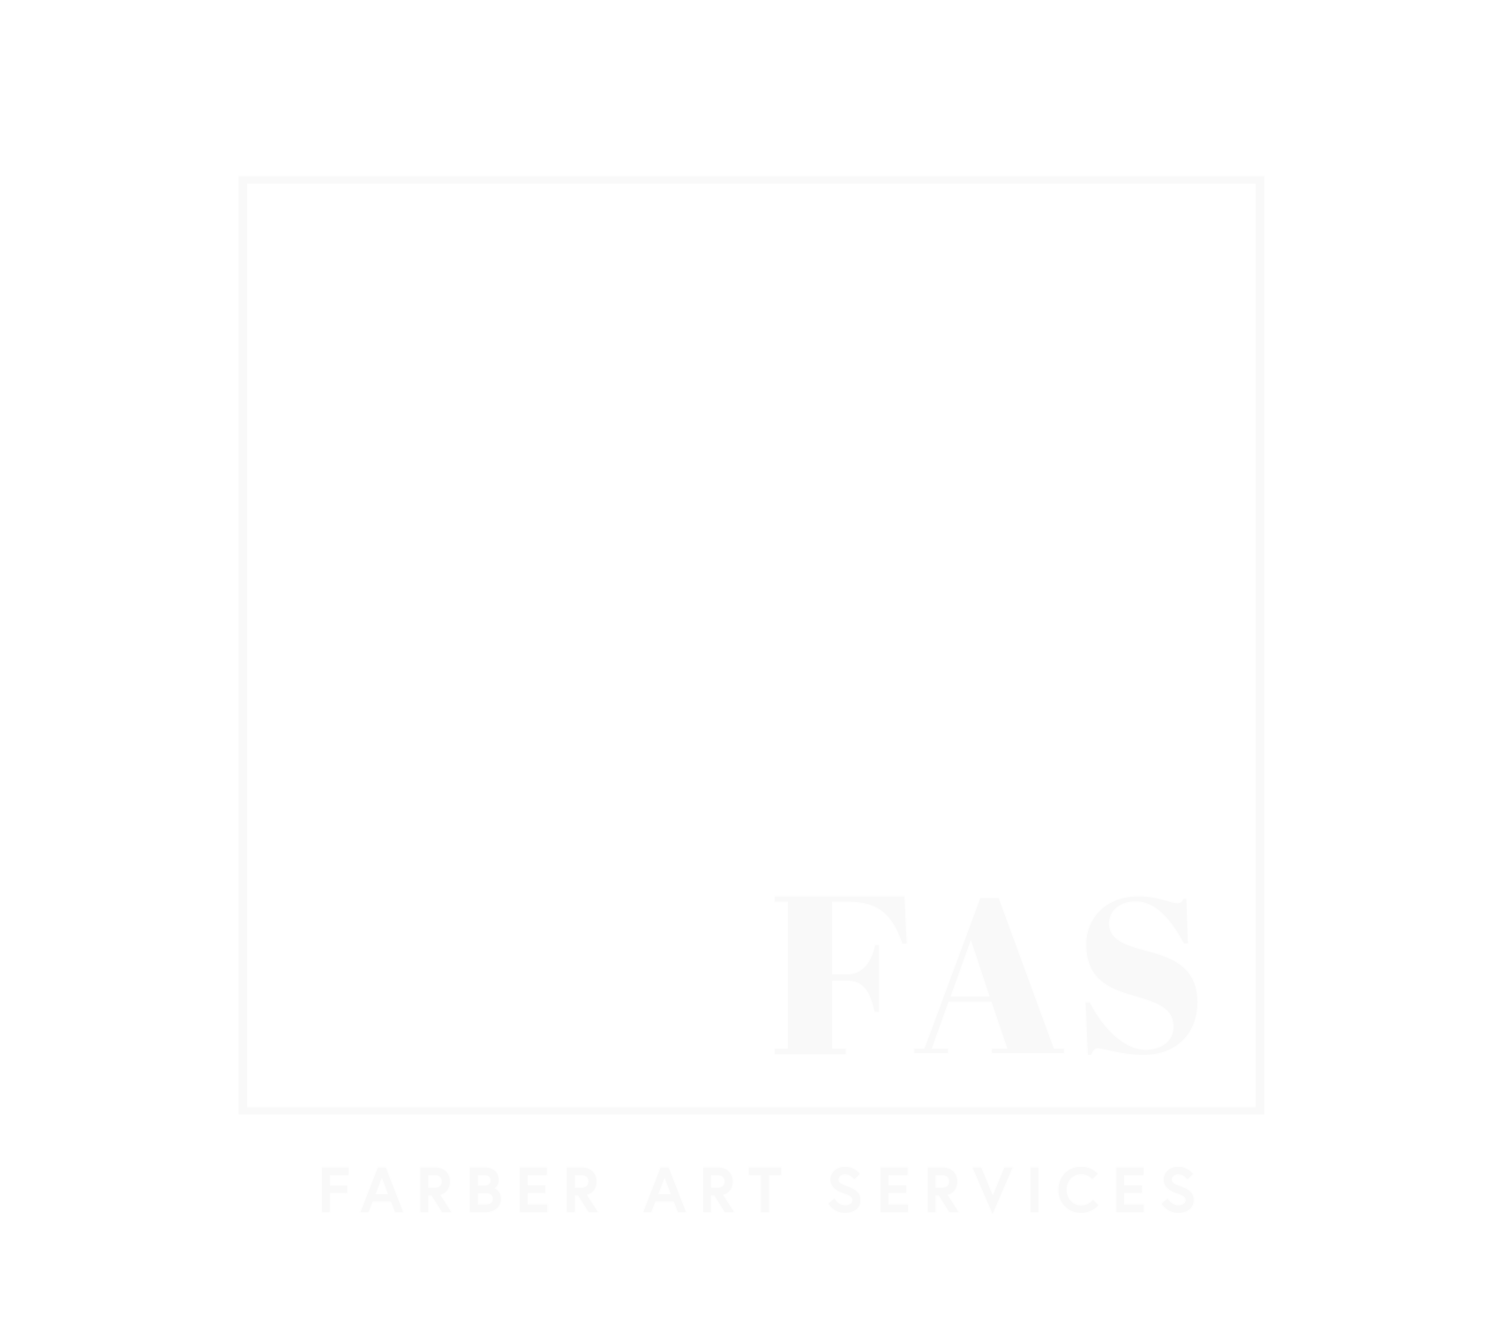 Farber Art Services